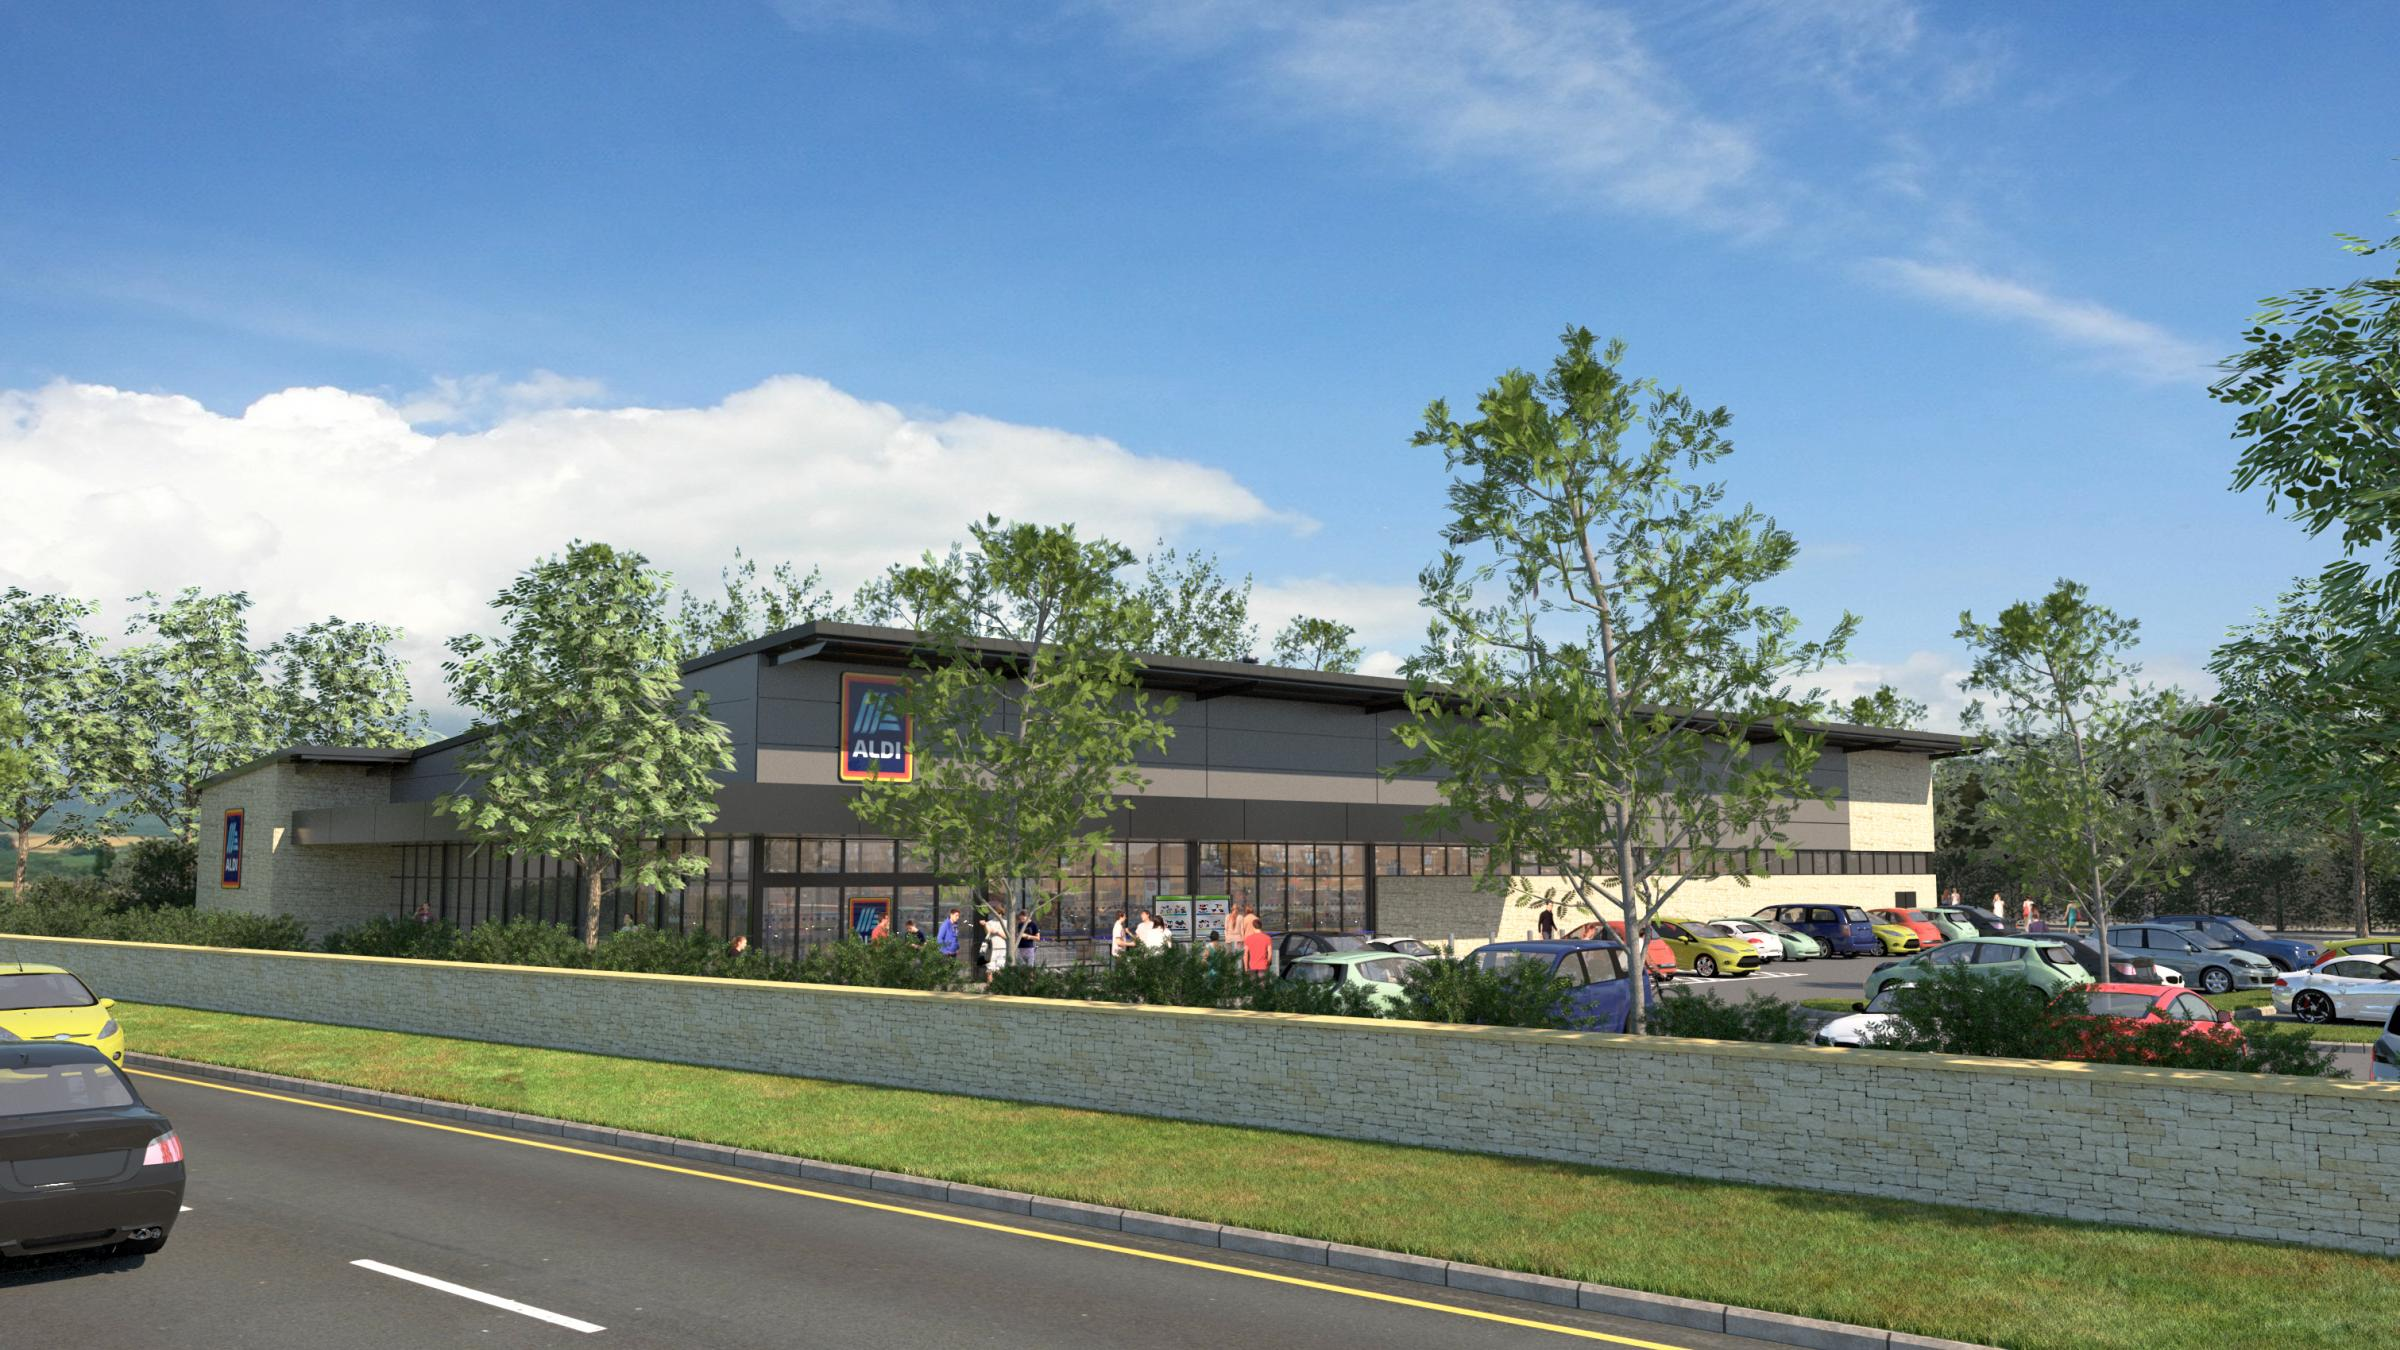 Aldi takes a step closer to Malmesbury store opening | Wilts